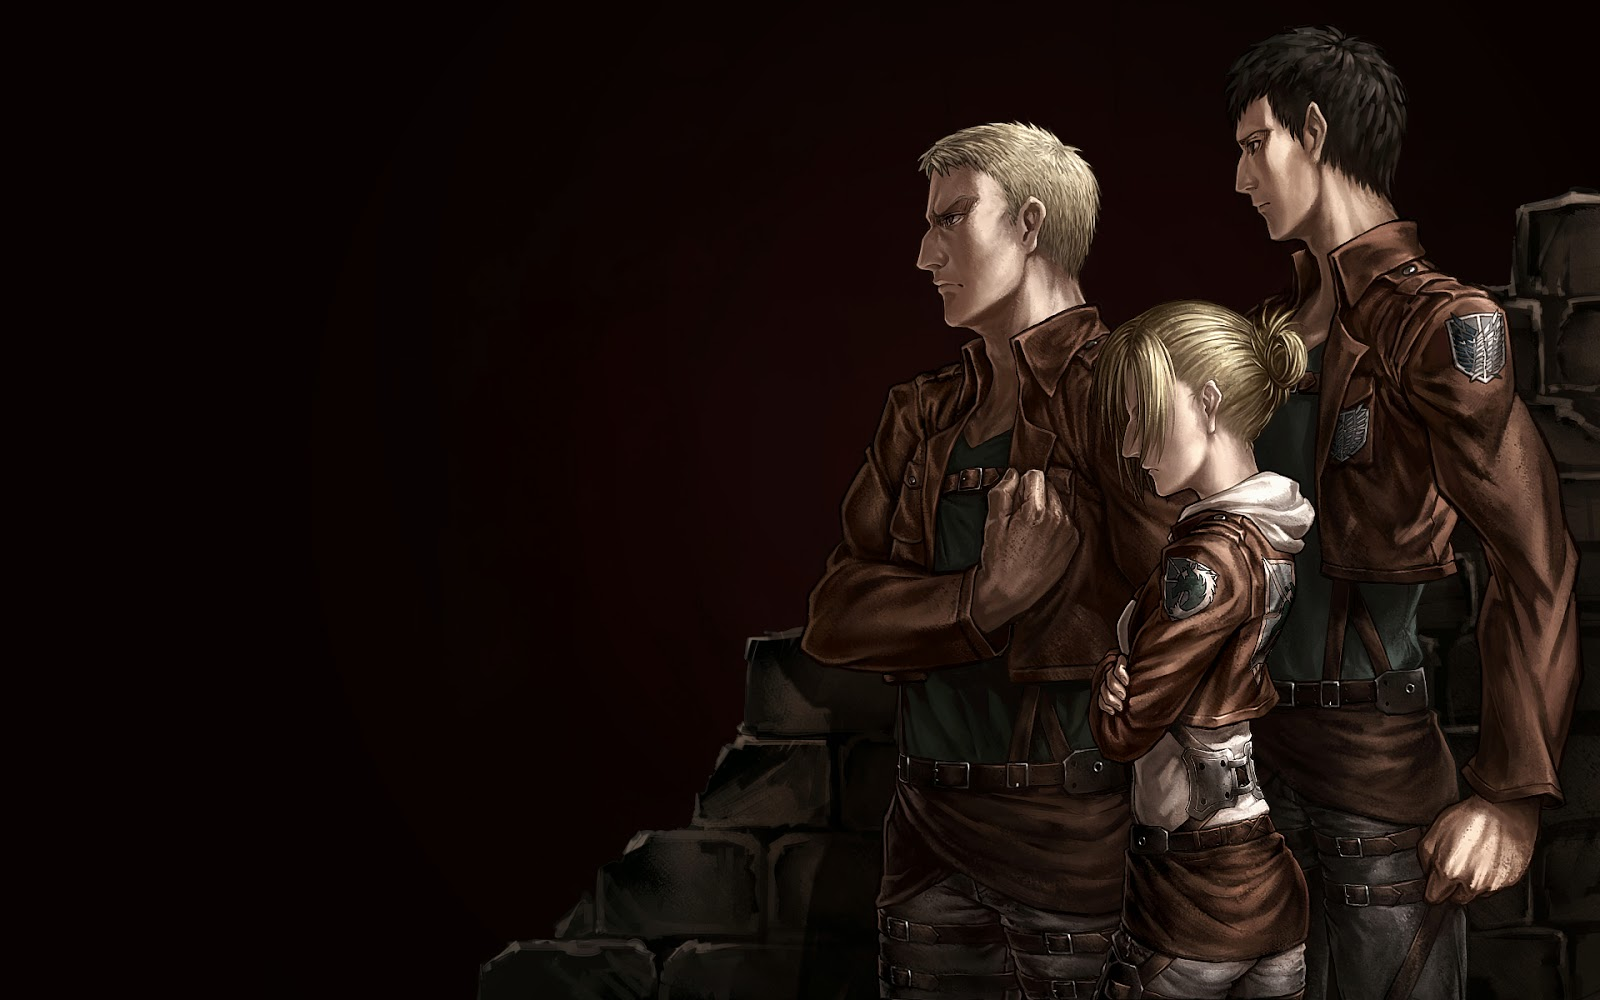 titan shifter Attack on Titan Shingeki no Kyojin Anime HD Wallpaper q3 1600x1000